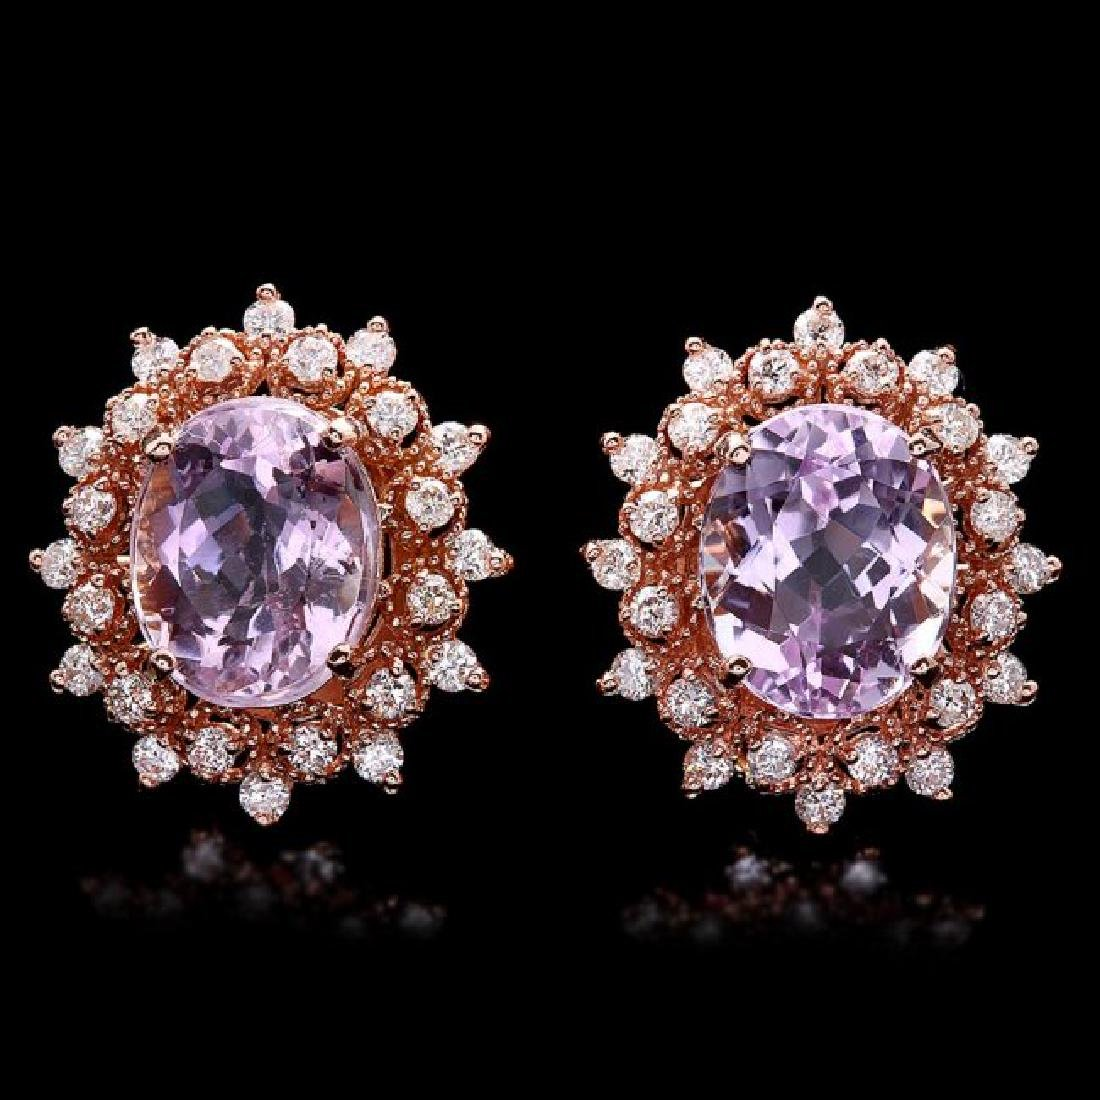 14k Rose 9.00ct Kunzite 1.20ct Diamond Earrings